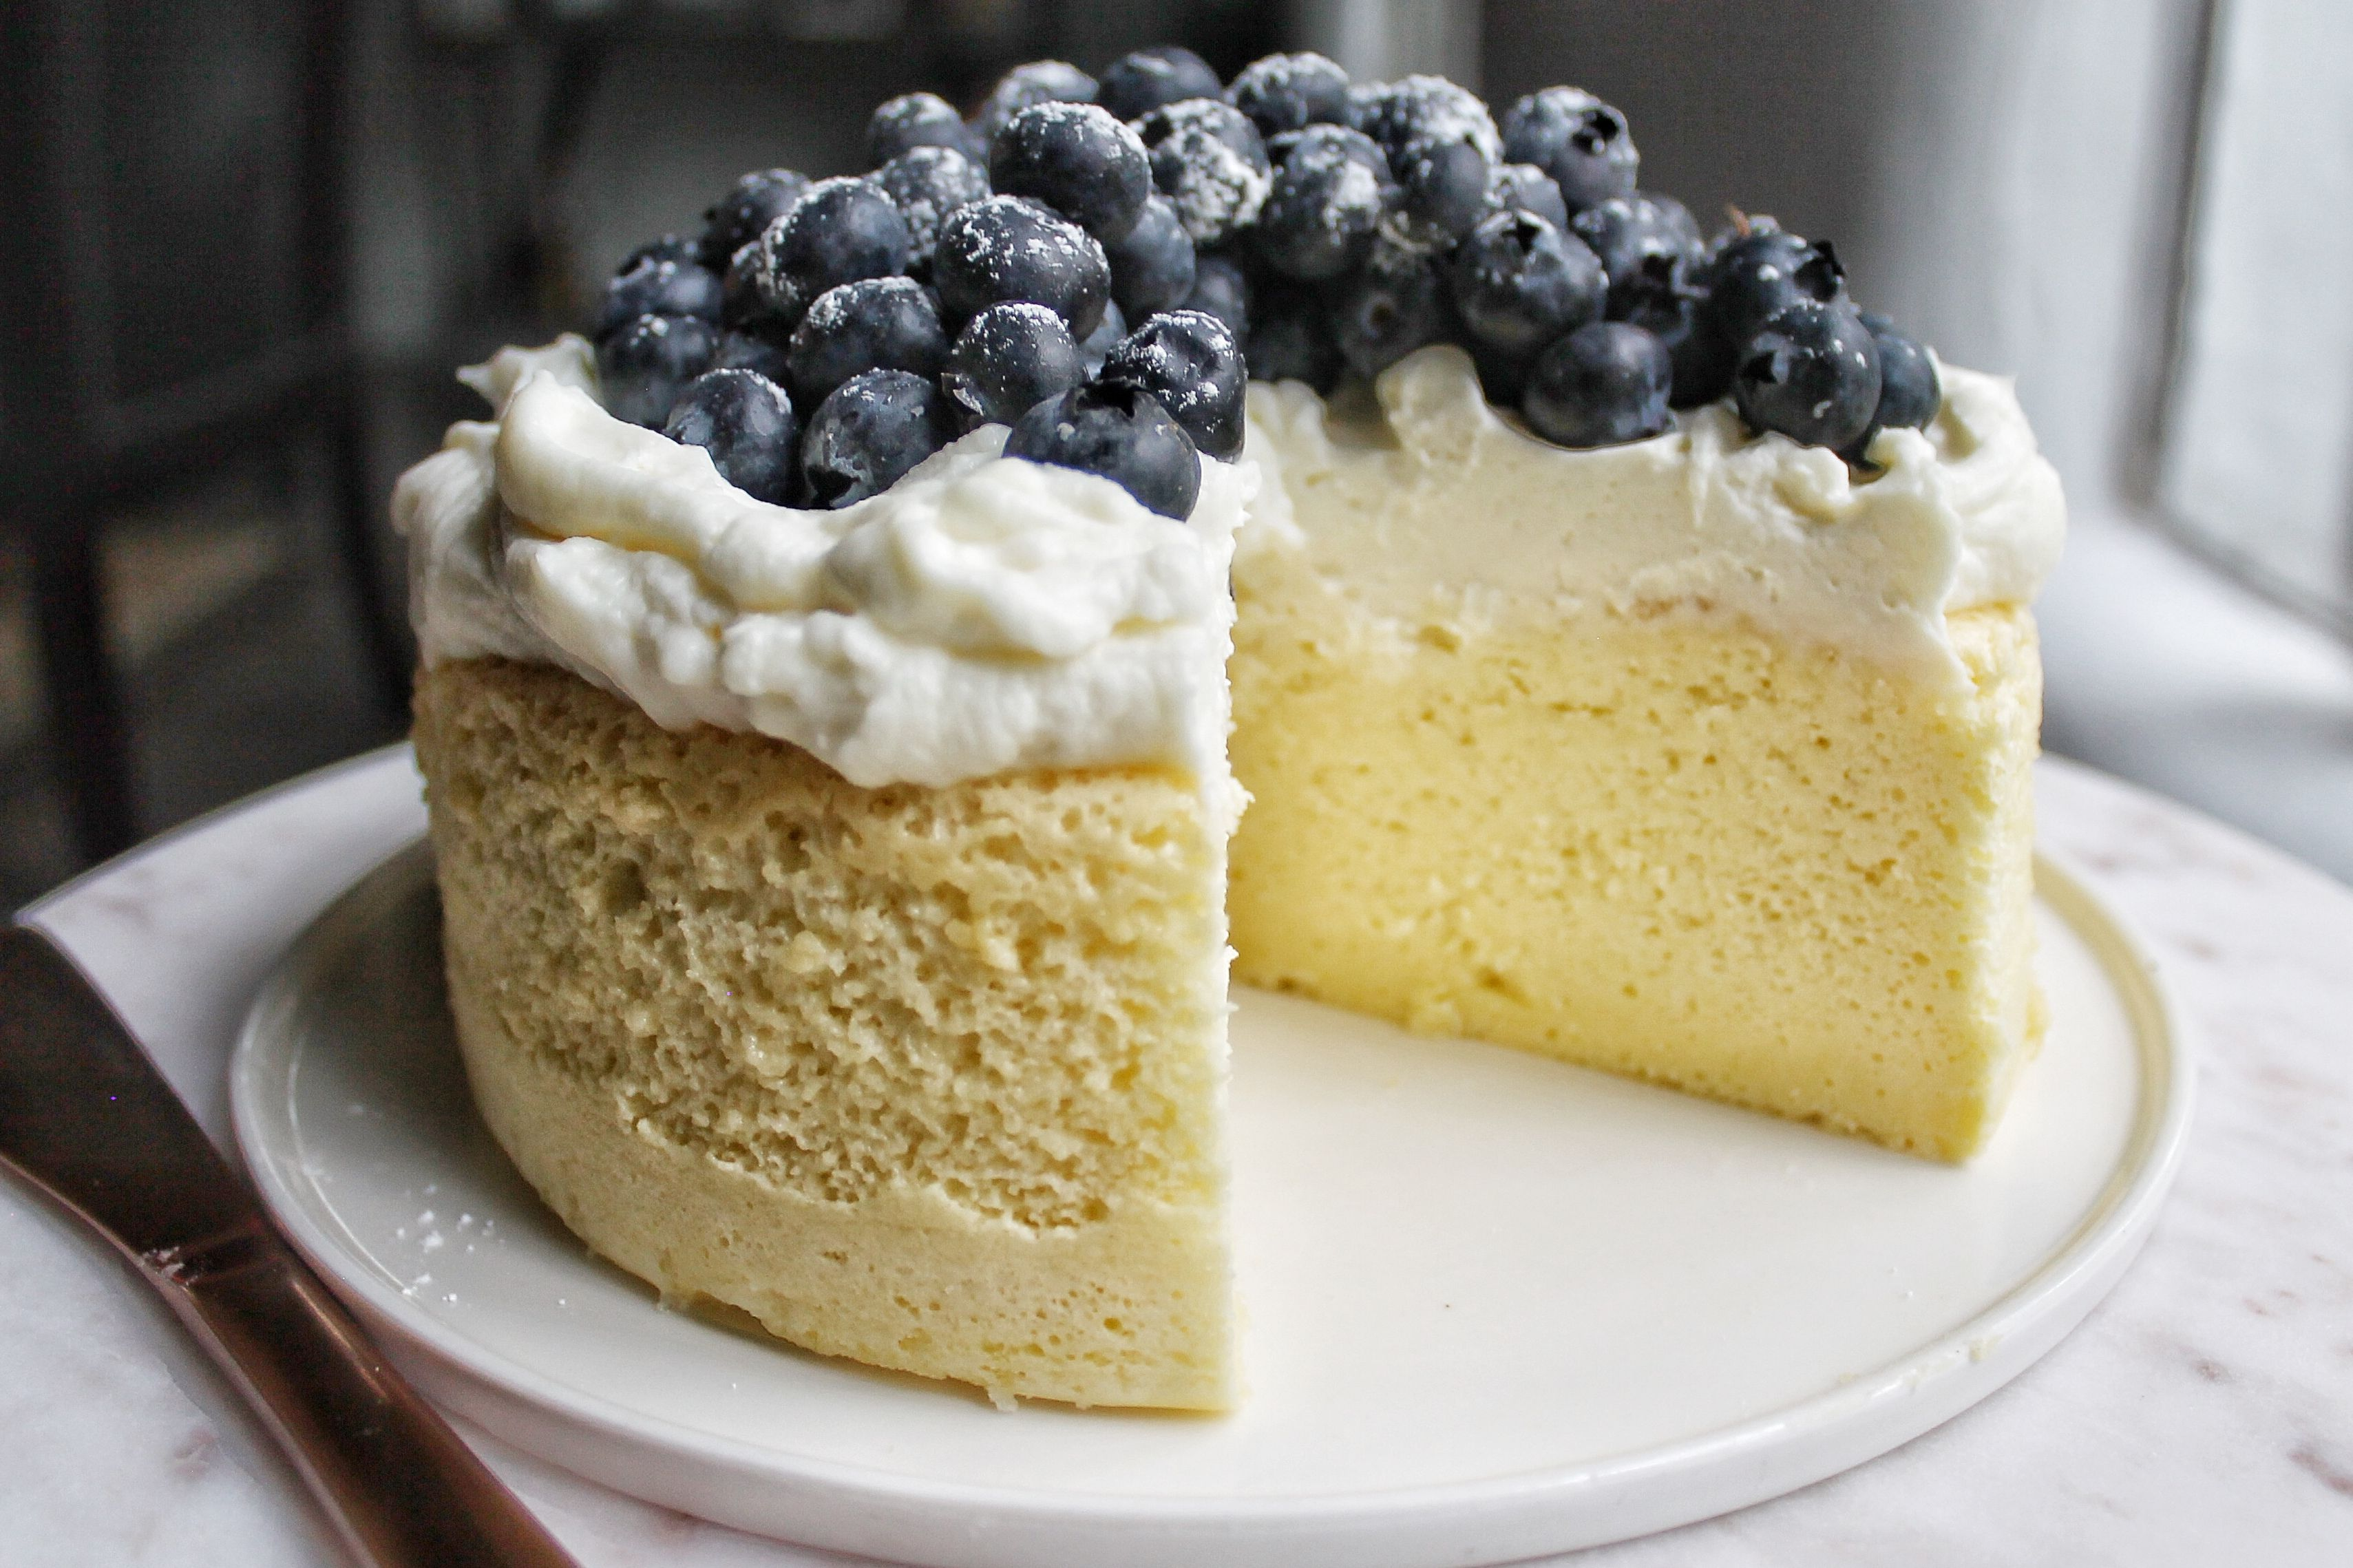 Cotton Japanese Cheesecake with Cream Cheese and Blueberry Topping